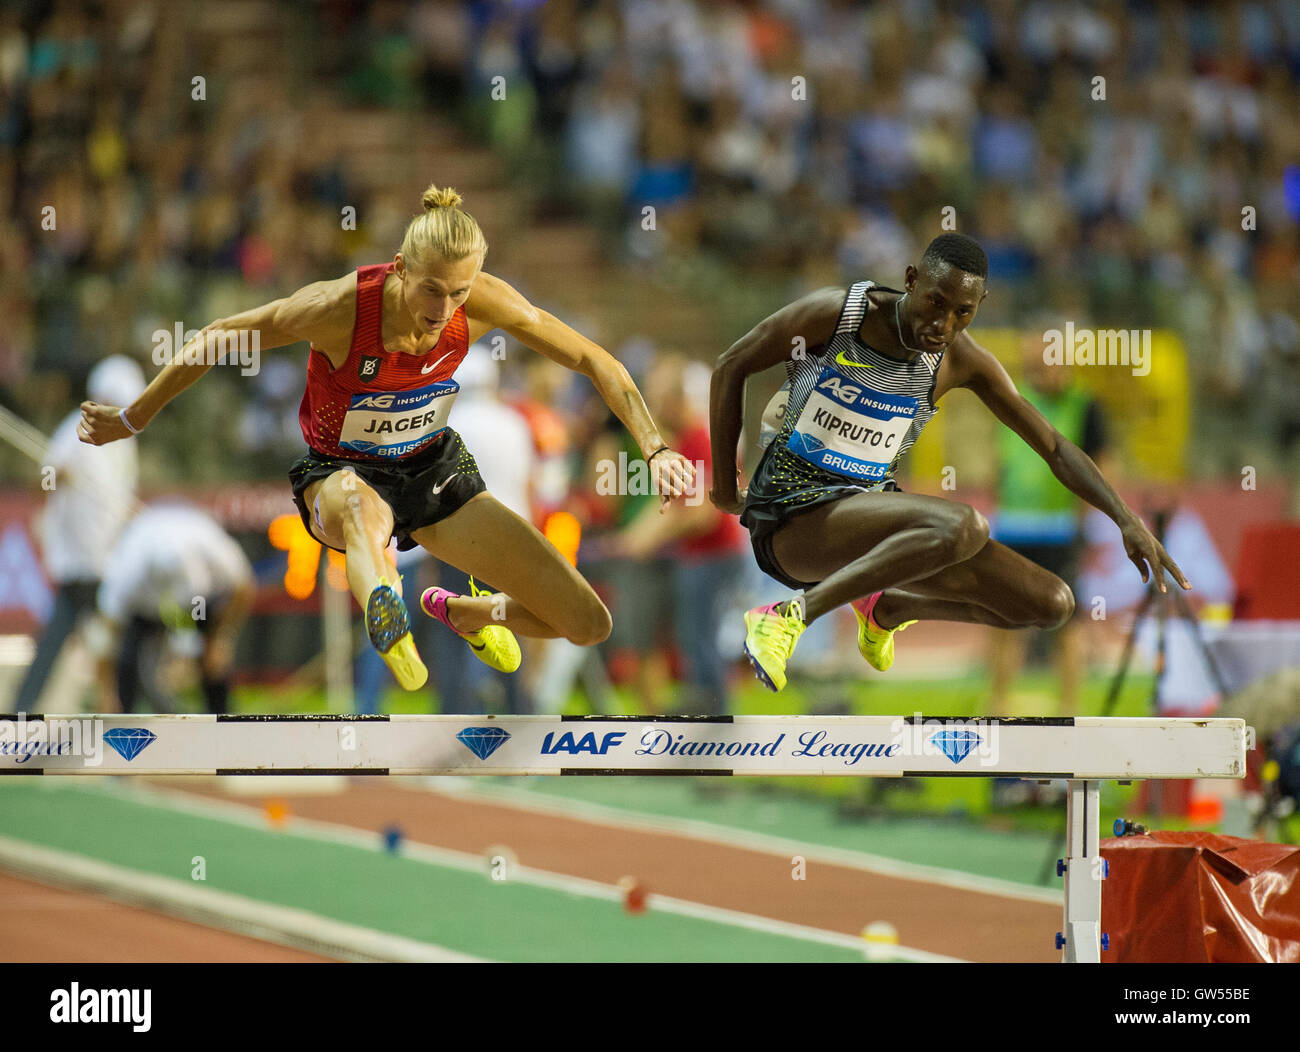 BRUSSELS, BELGIUM - SEPTEMBER 9: Evan Jager _ Conseslus Kipruto competing in the men's 3000m Steeplechase at - Stock Image